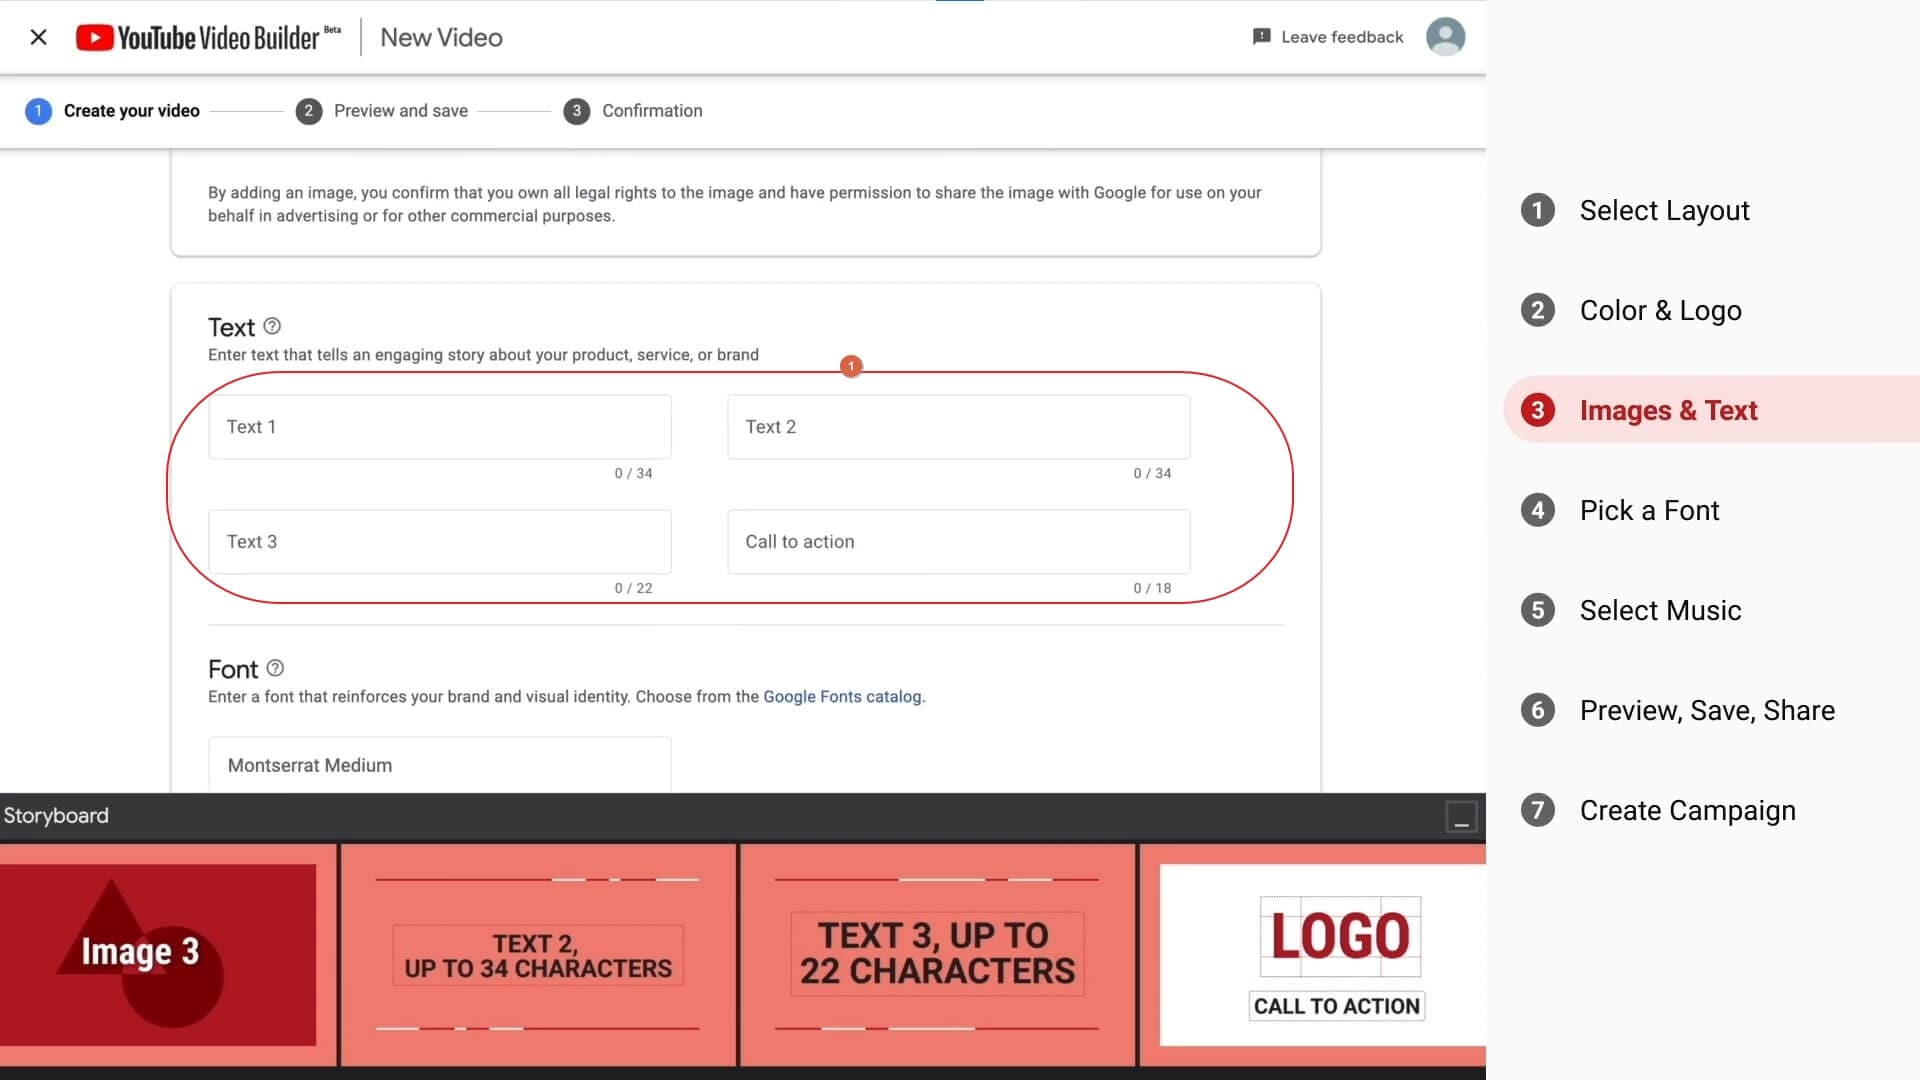 Create video with YouTube Video Builder with CTA